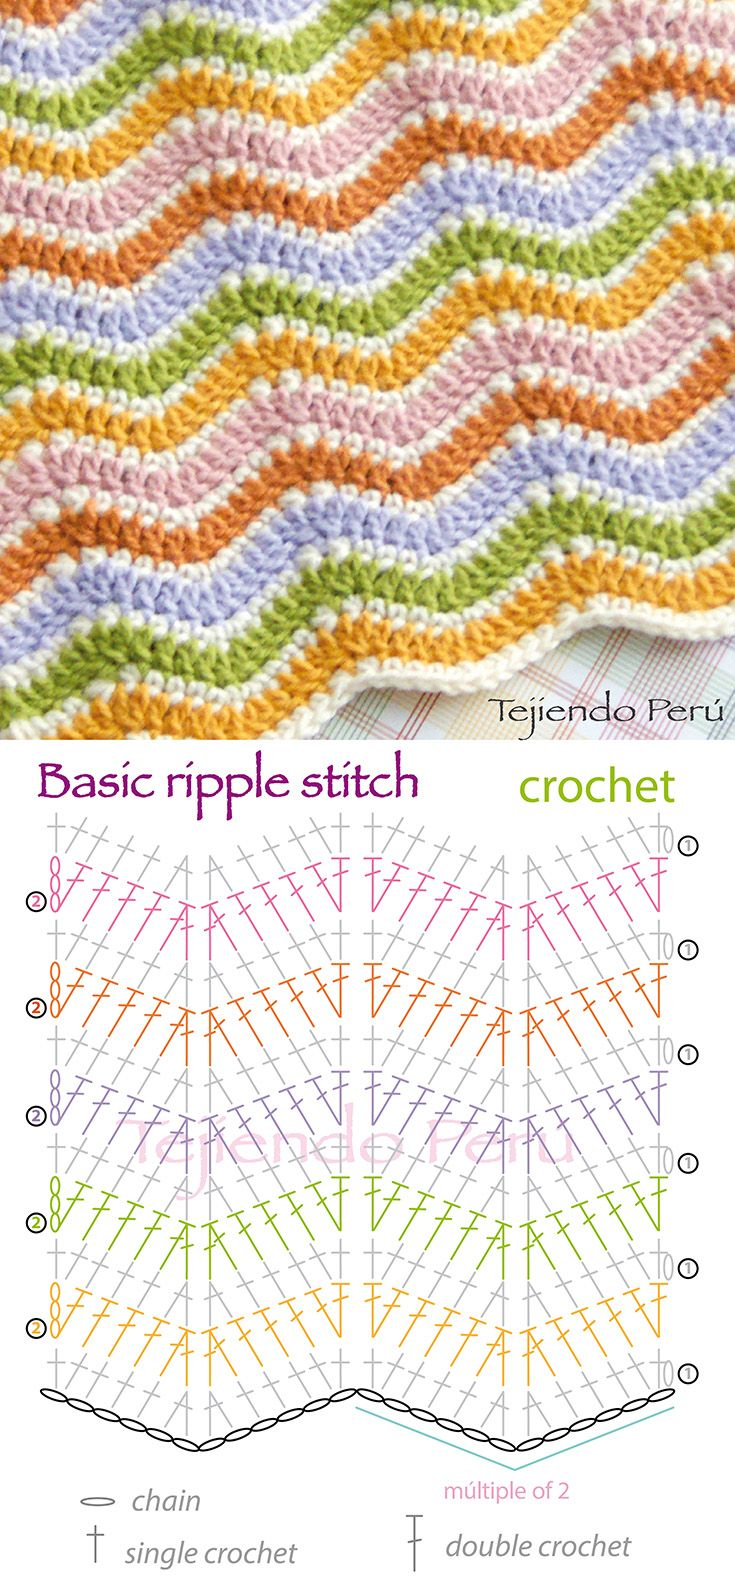 Crochet: basic ripple stitch diagram (pattern or chart)!